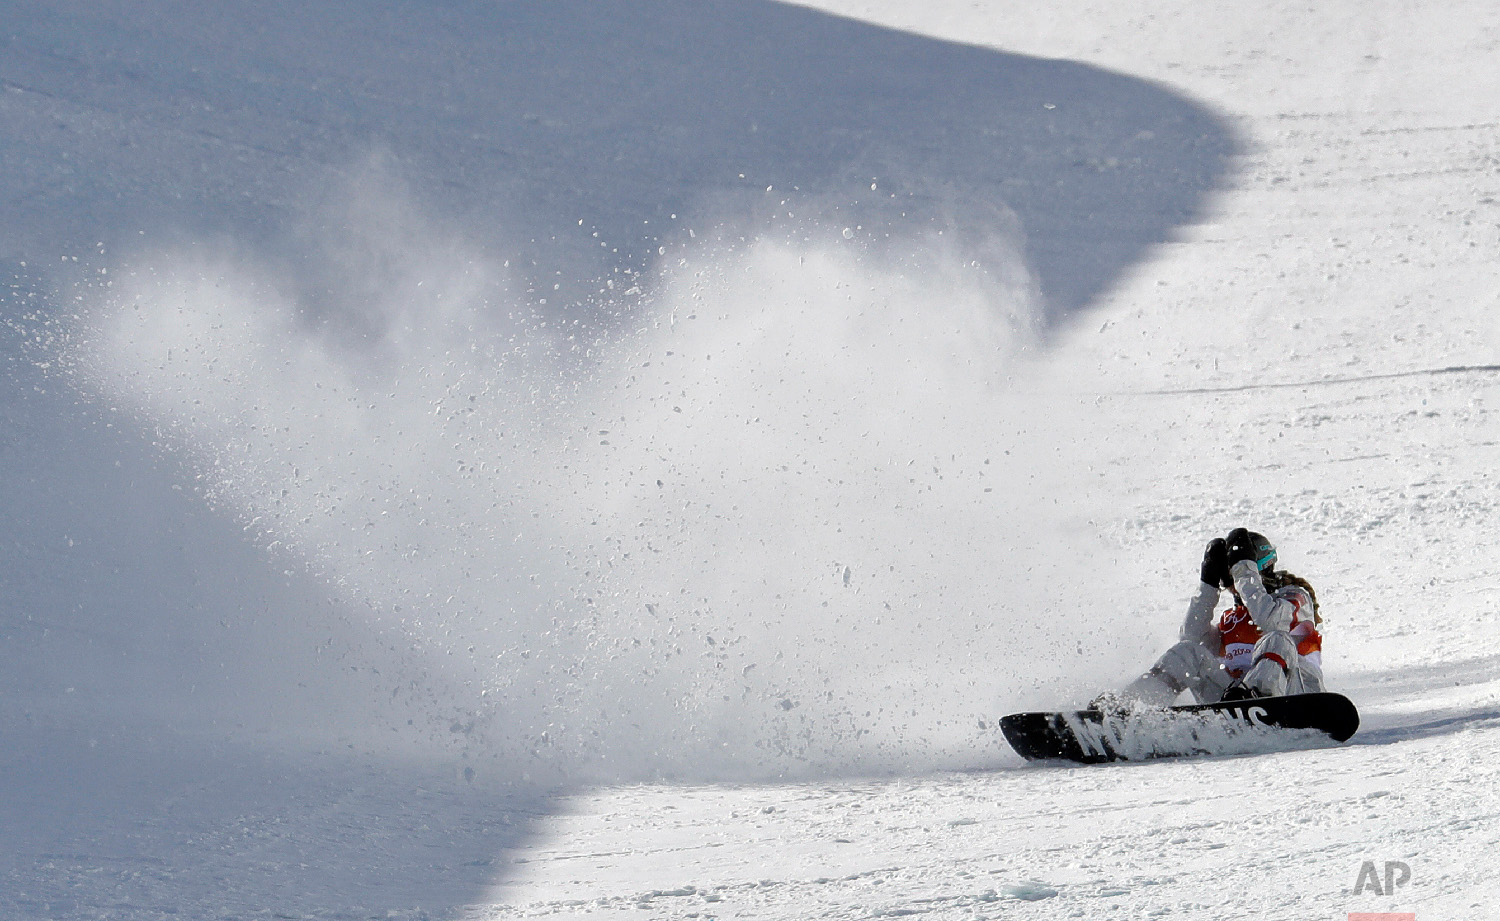 MaddieMastro, of the United States, reacts after crashing during the women's halfpipe finals at Phoenix Snow Park at the 2018 Winter Olympics in Pyeongchang, South Korea, Tuesday, Feb. 13, 2018. (AP Photo/Lee Jin-man)